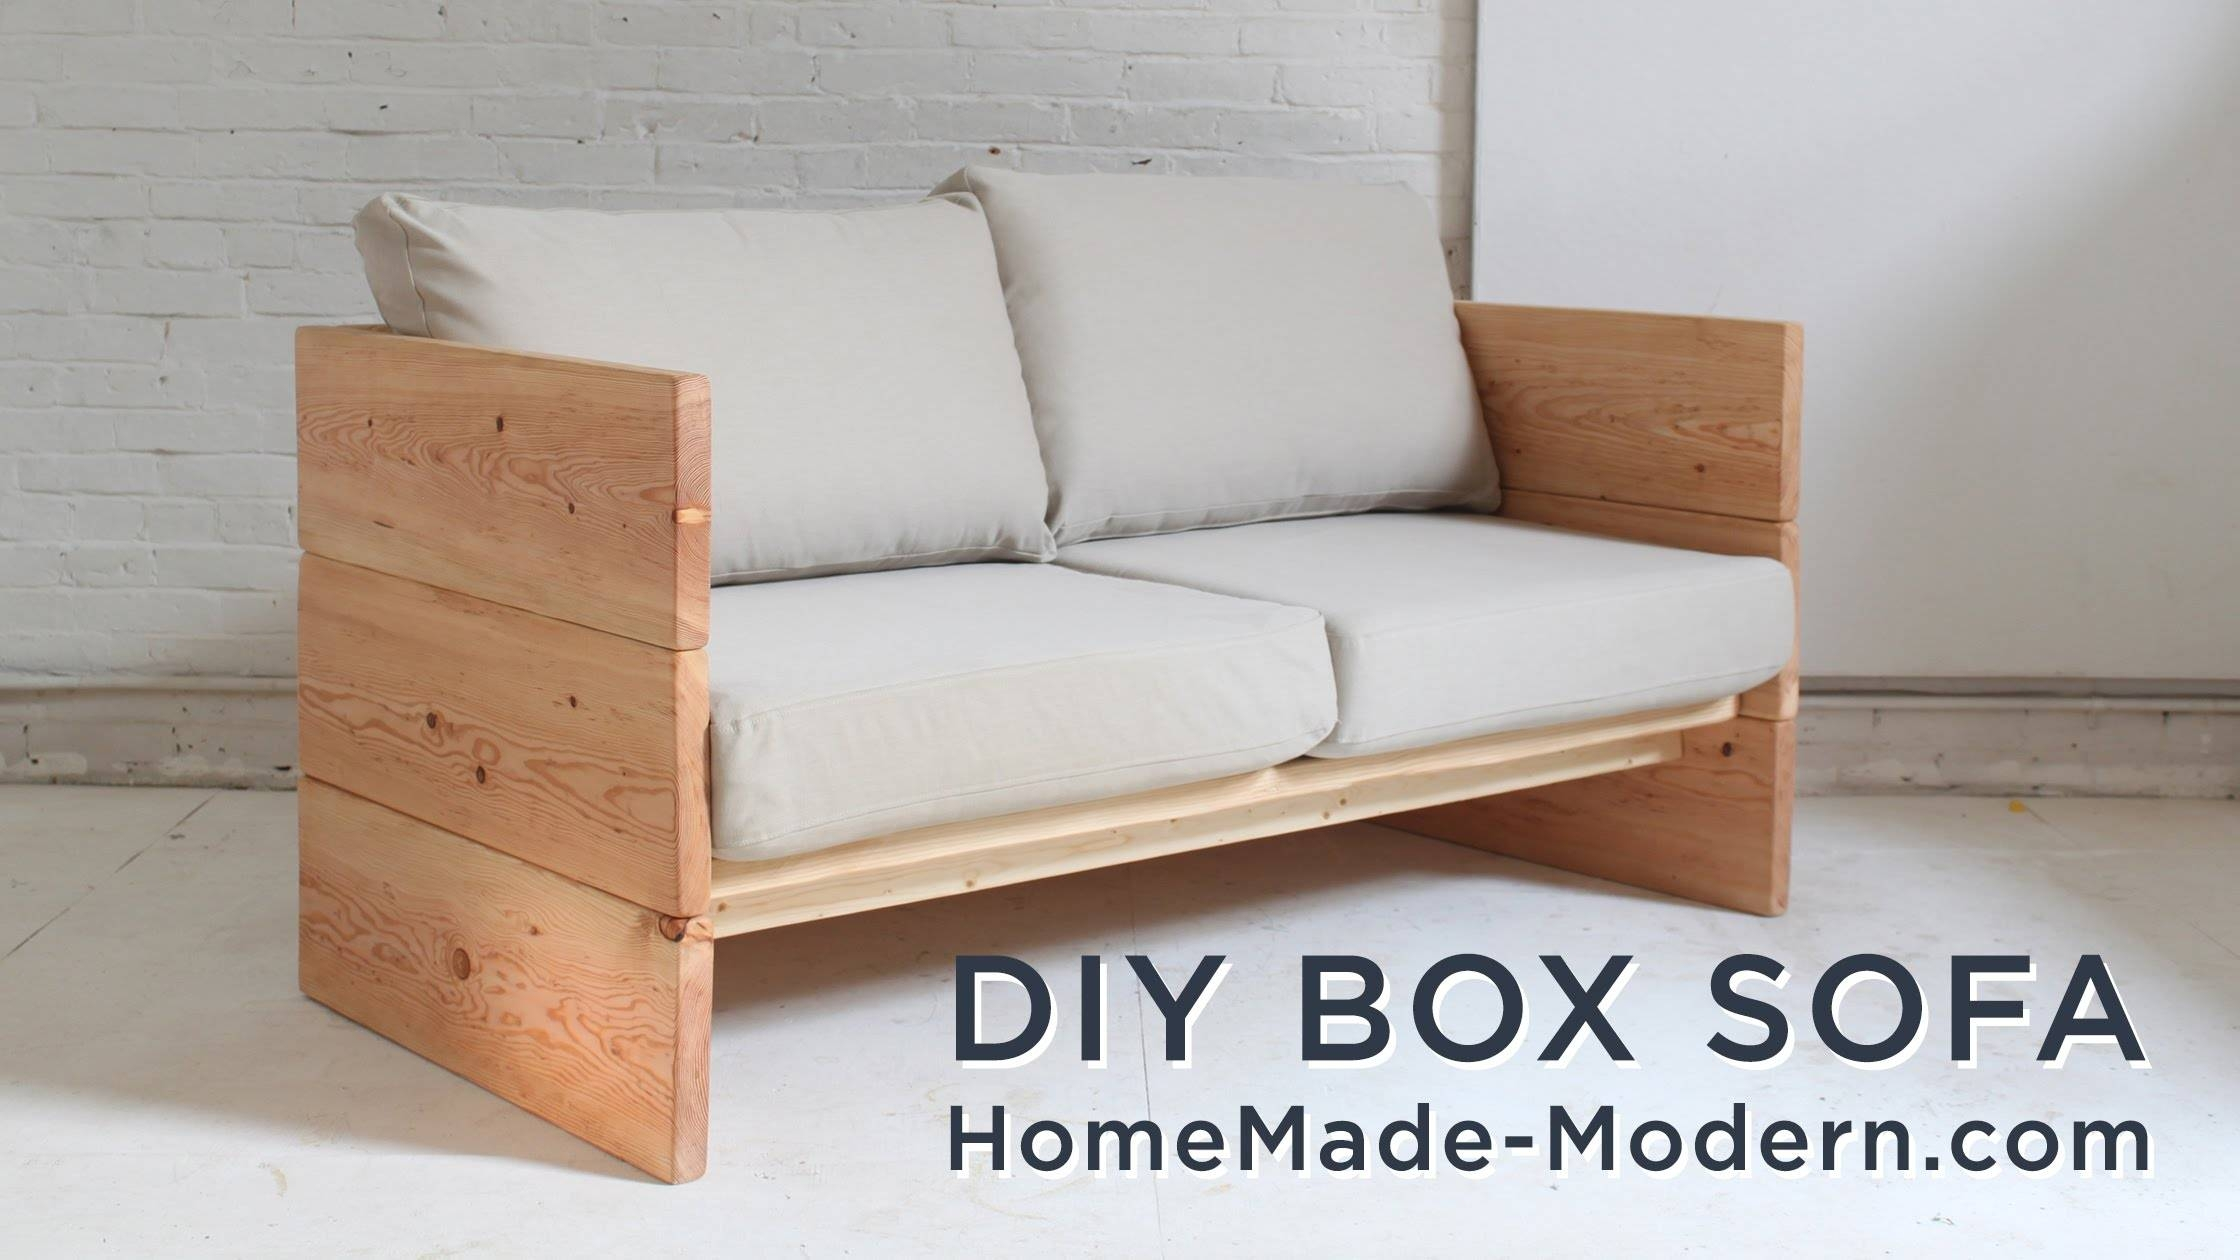 Diy Sofa Made Out Of 2X10S - Youtube pertaining to Diy Sofa Frame (Image 14 of 30)